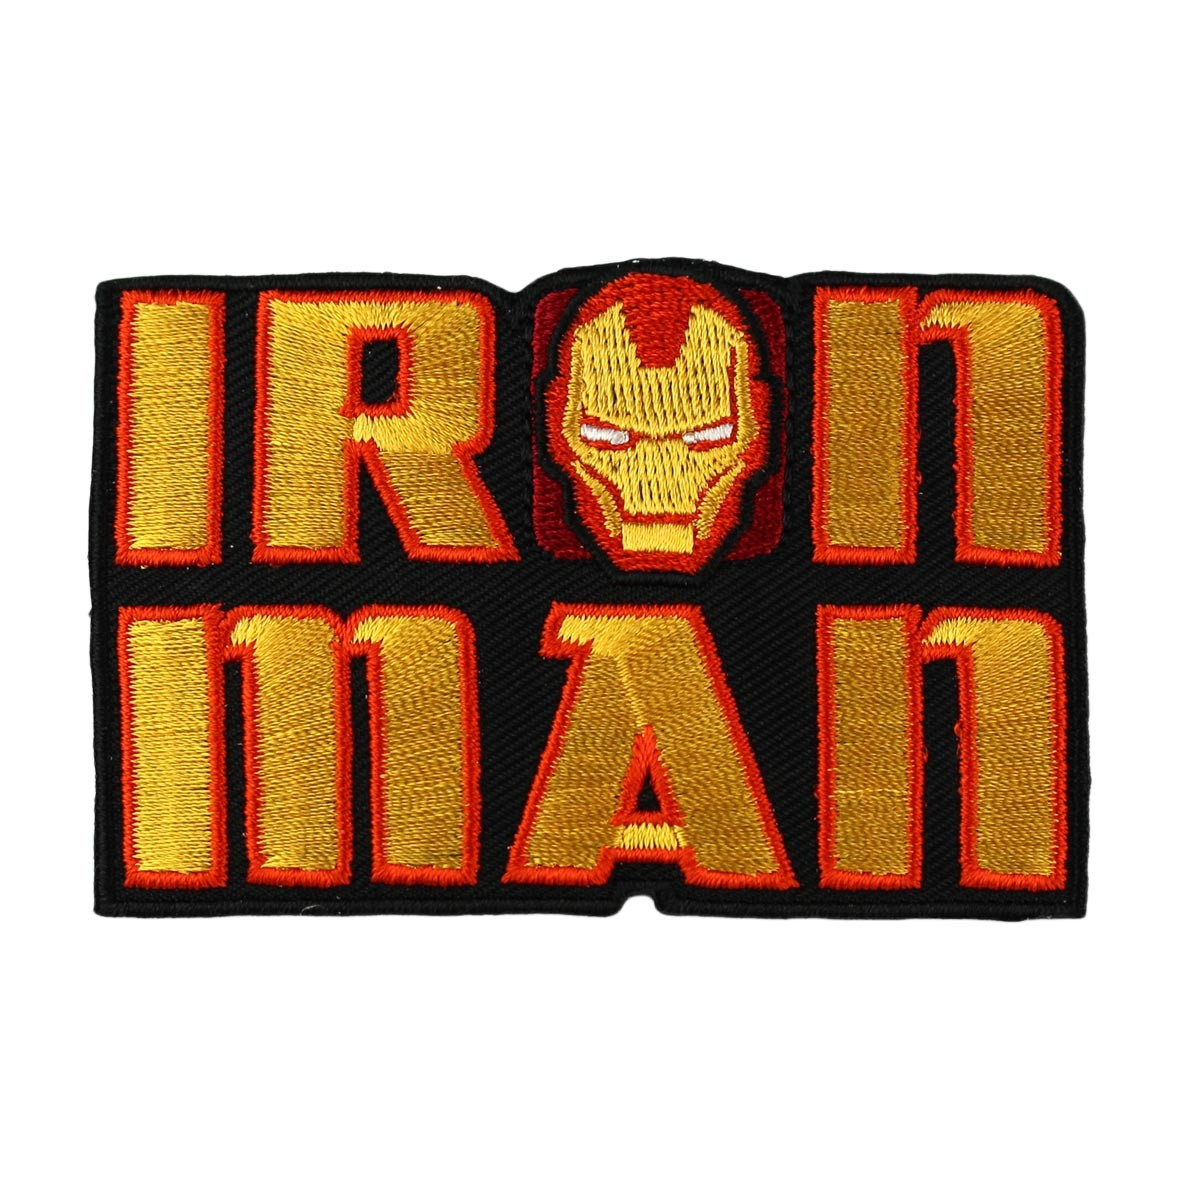 Avengers Iron Man logo iron-on applique - orange - Ma Petite Mercerie